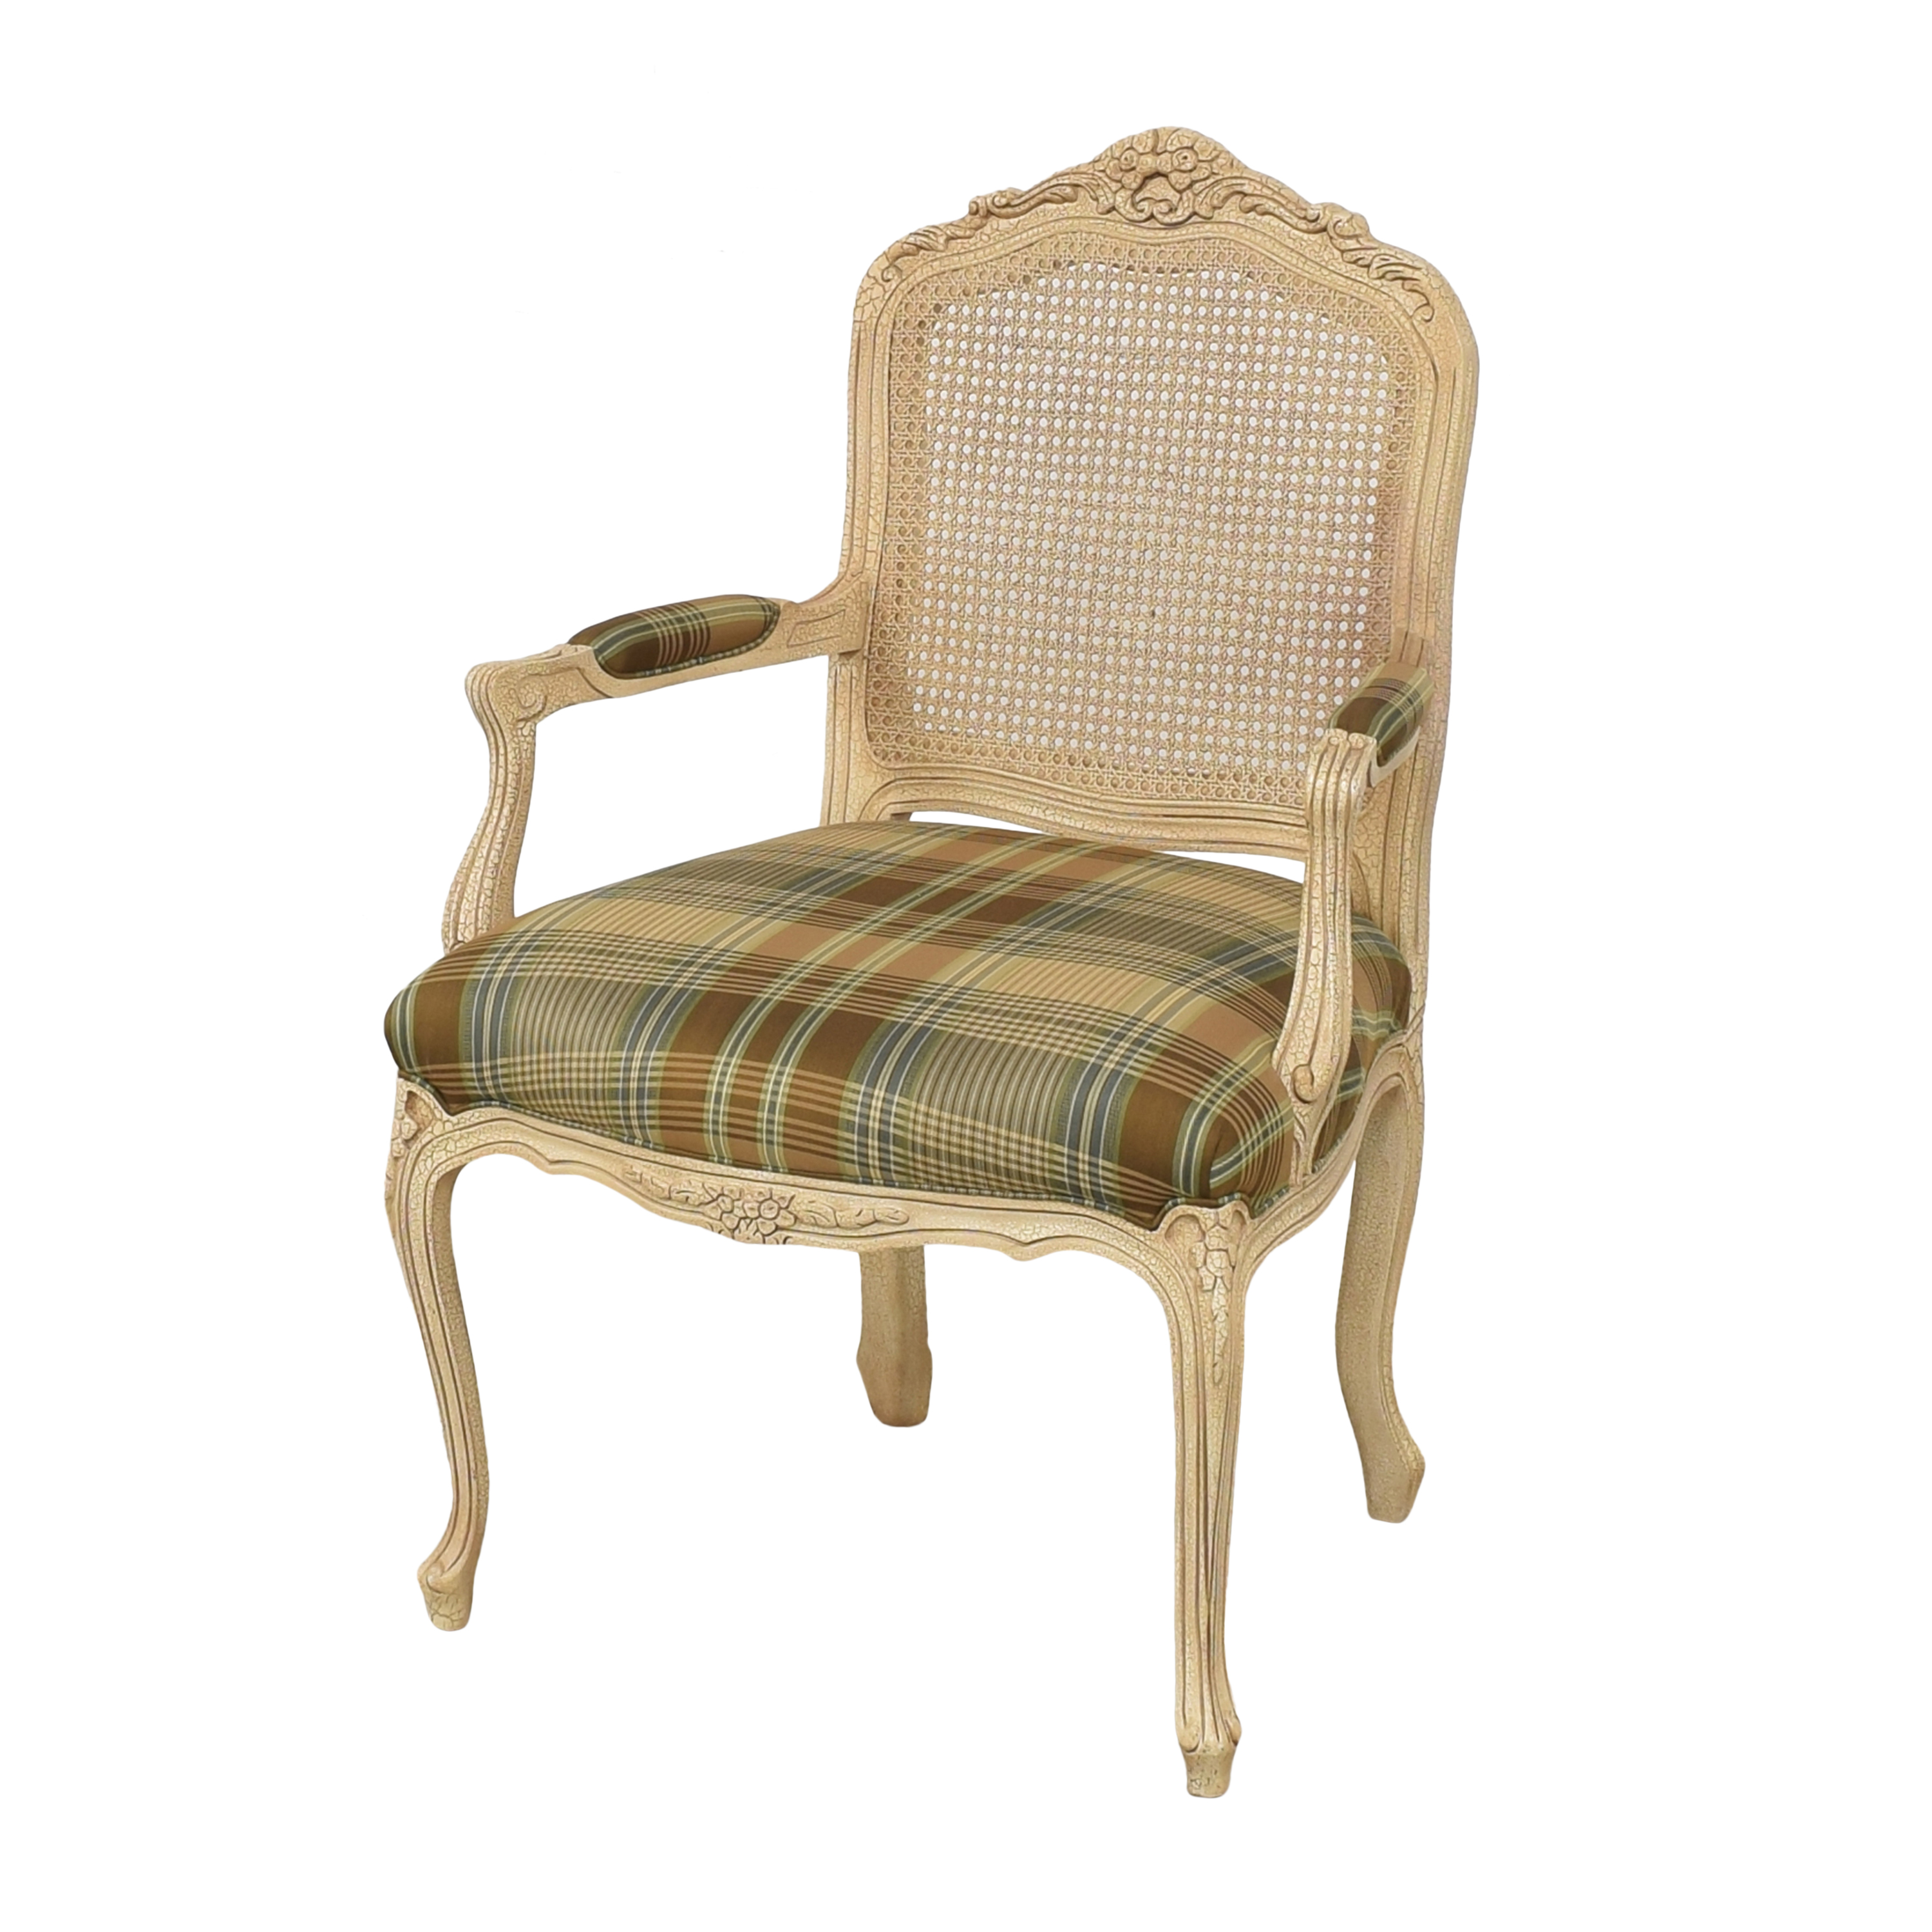 Hancock and Moore Hancock and Moore Plaid Seat Arm Chair second hand